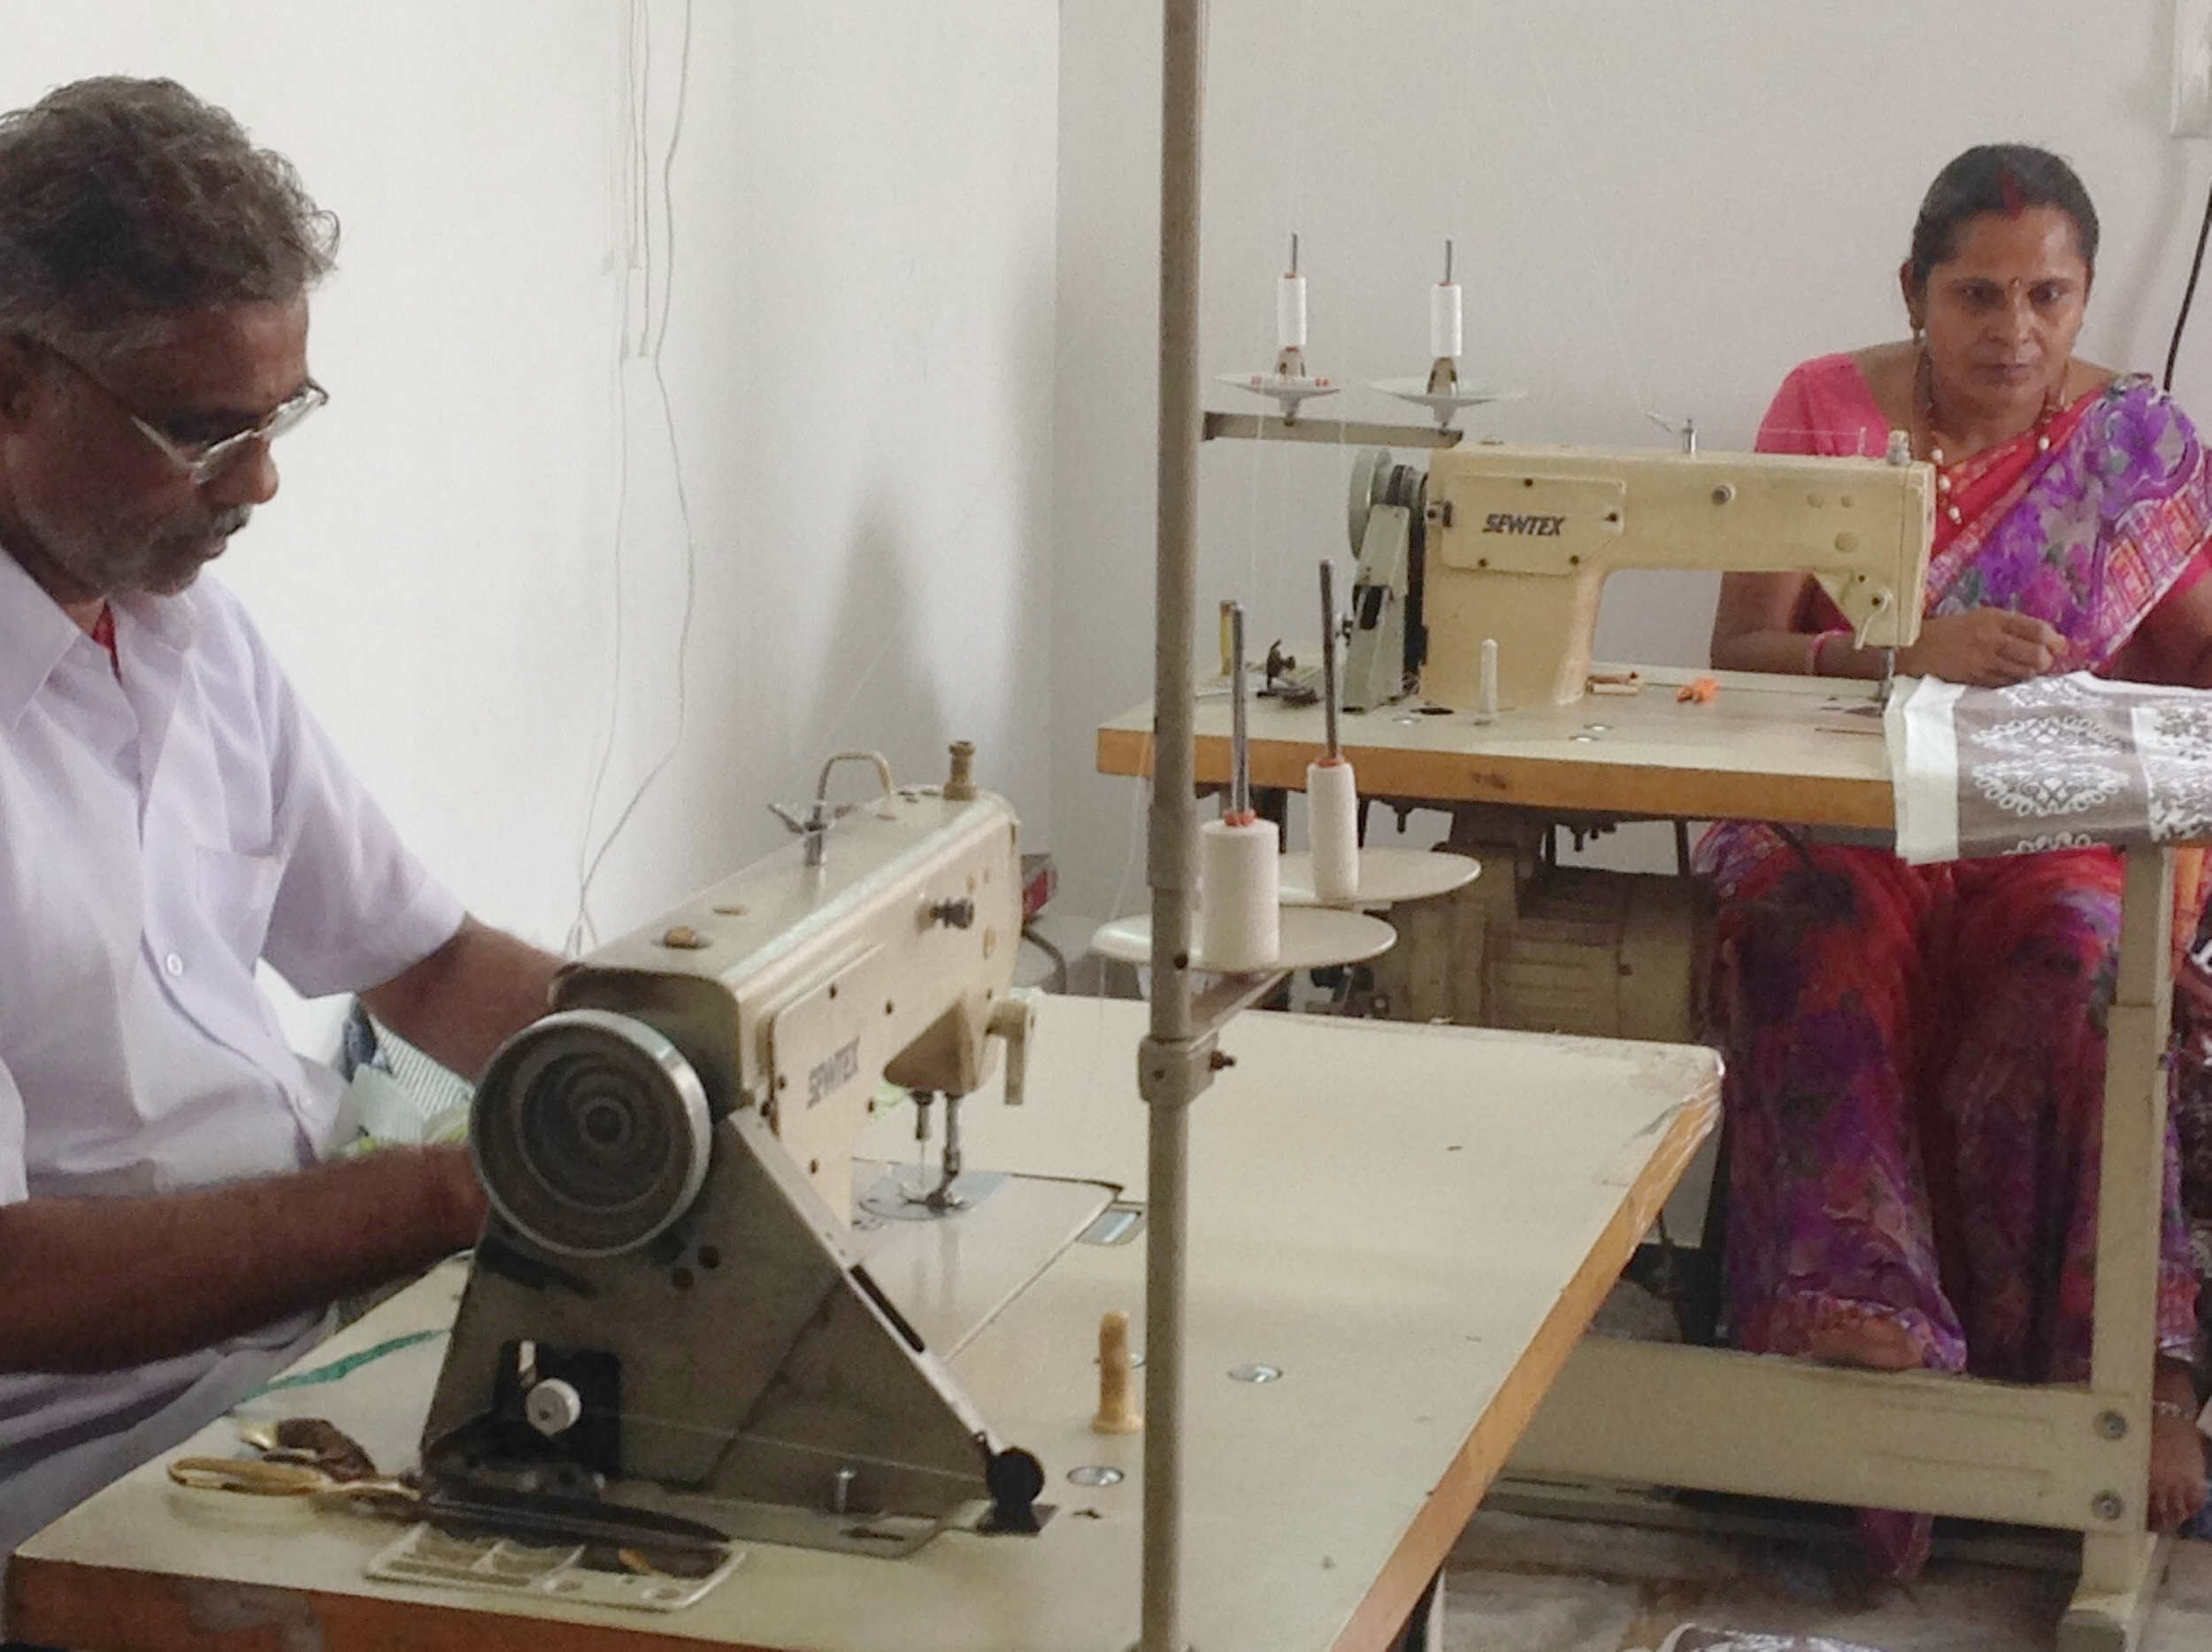 Sewing the Garment